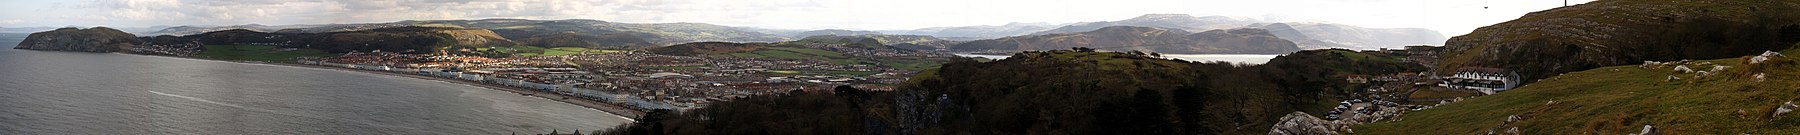 Panorama of Llandudno bay from the Orme